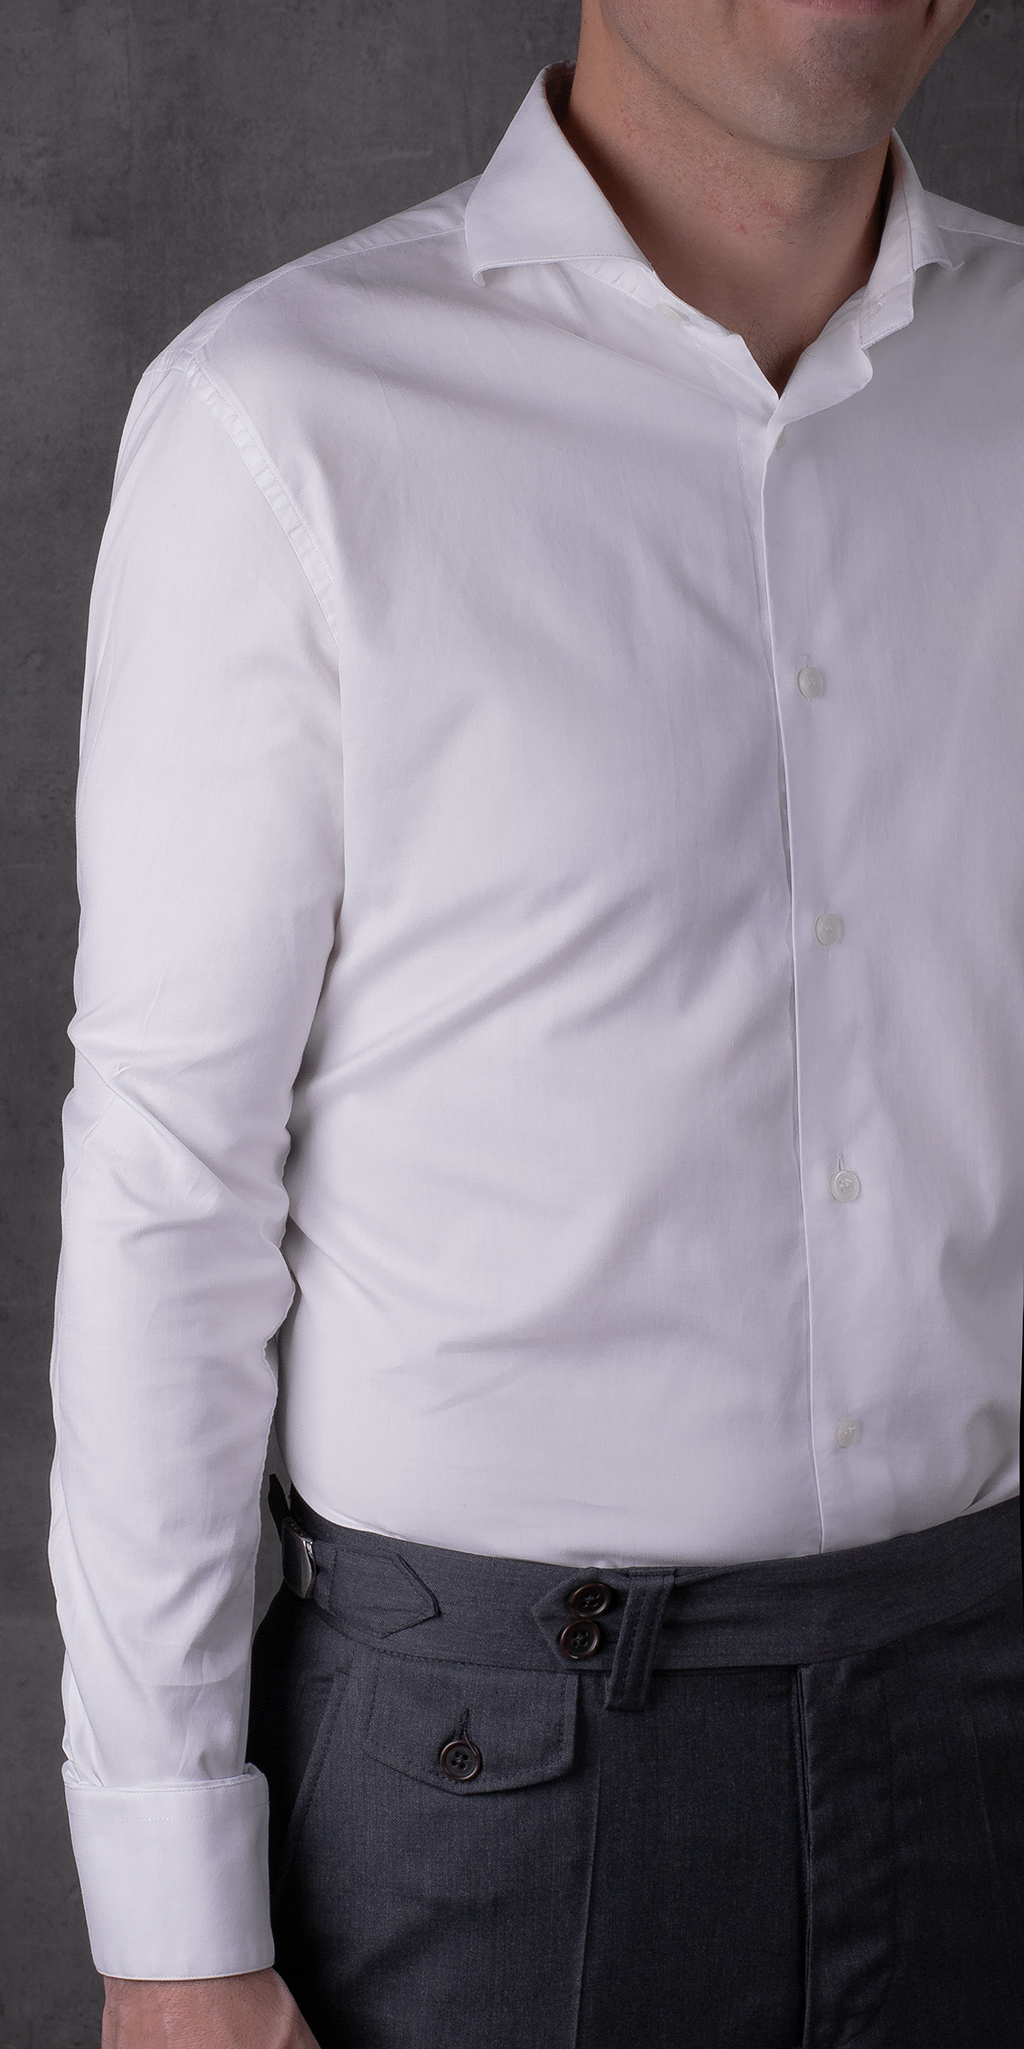 SHIRT 01.01 WHITE CAMISA 01.01 BLANCA The Seëlk 7